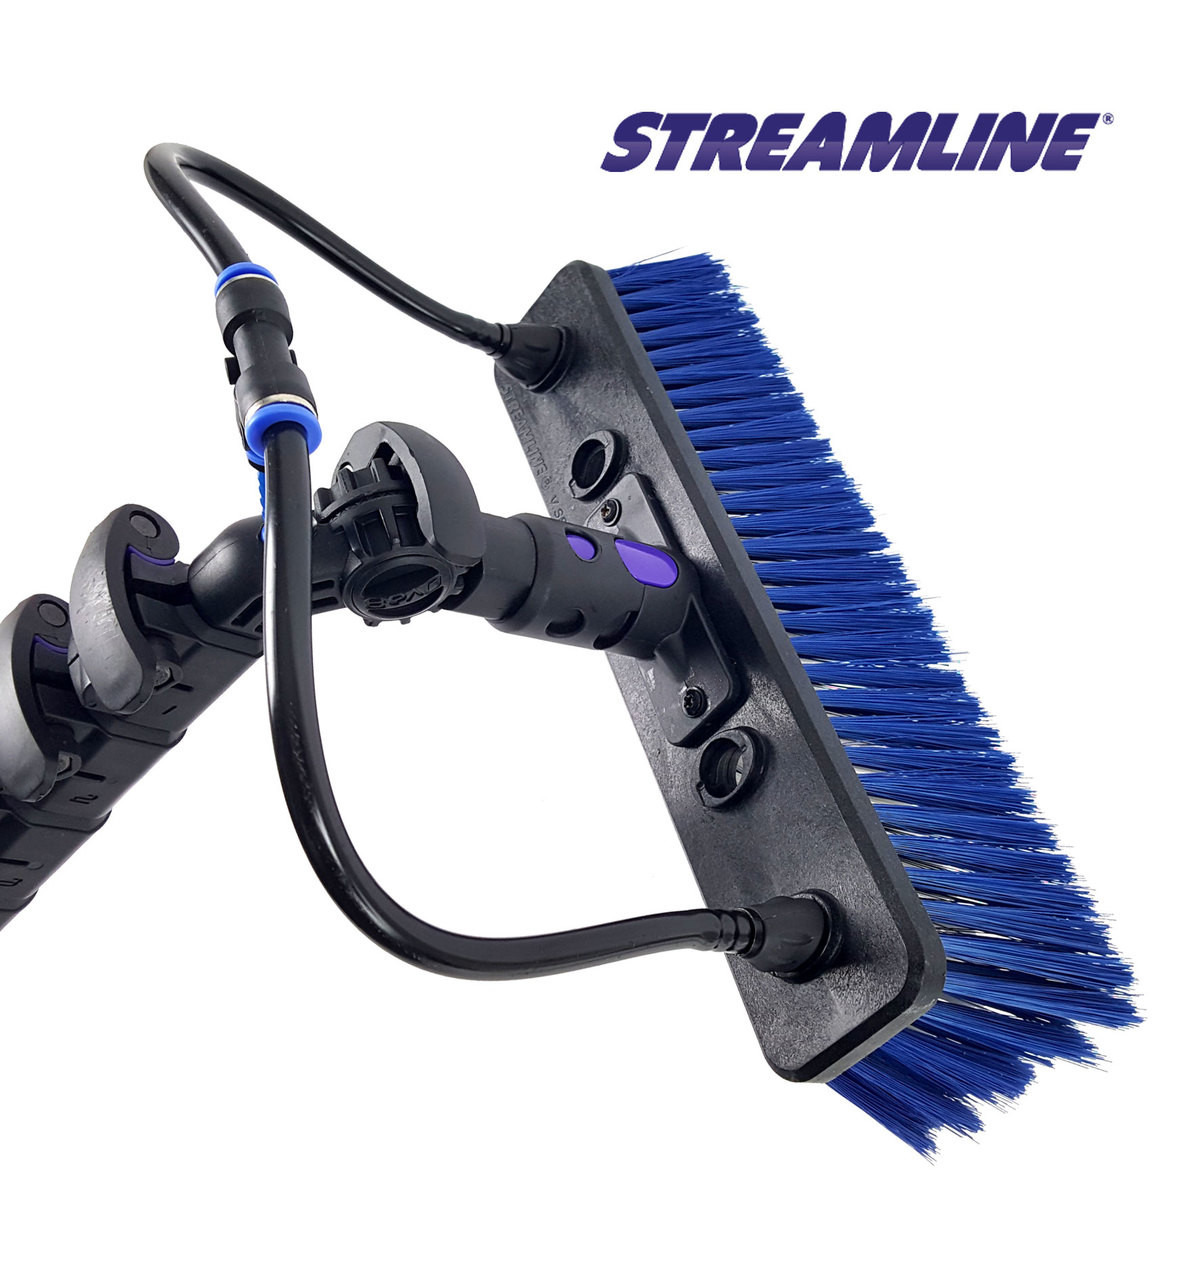 STREAMLINE® OVA-8 100% Carbon Waterfed Pole w/tube and brush